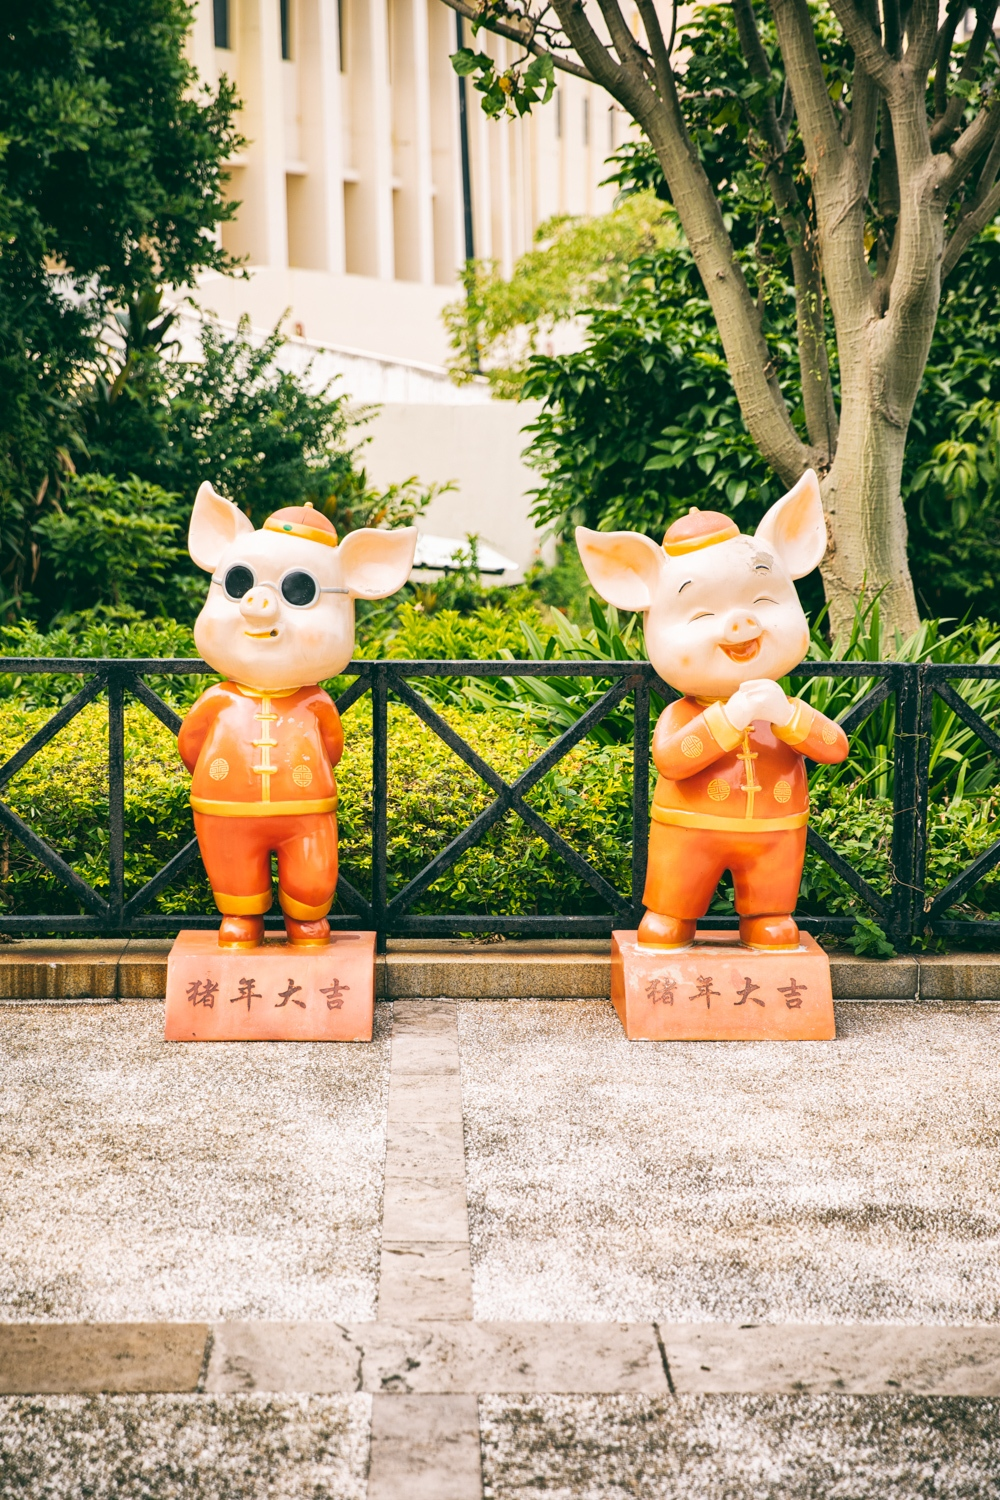 Pigs, Macao